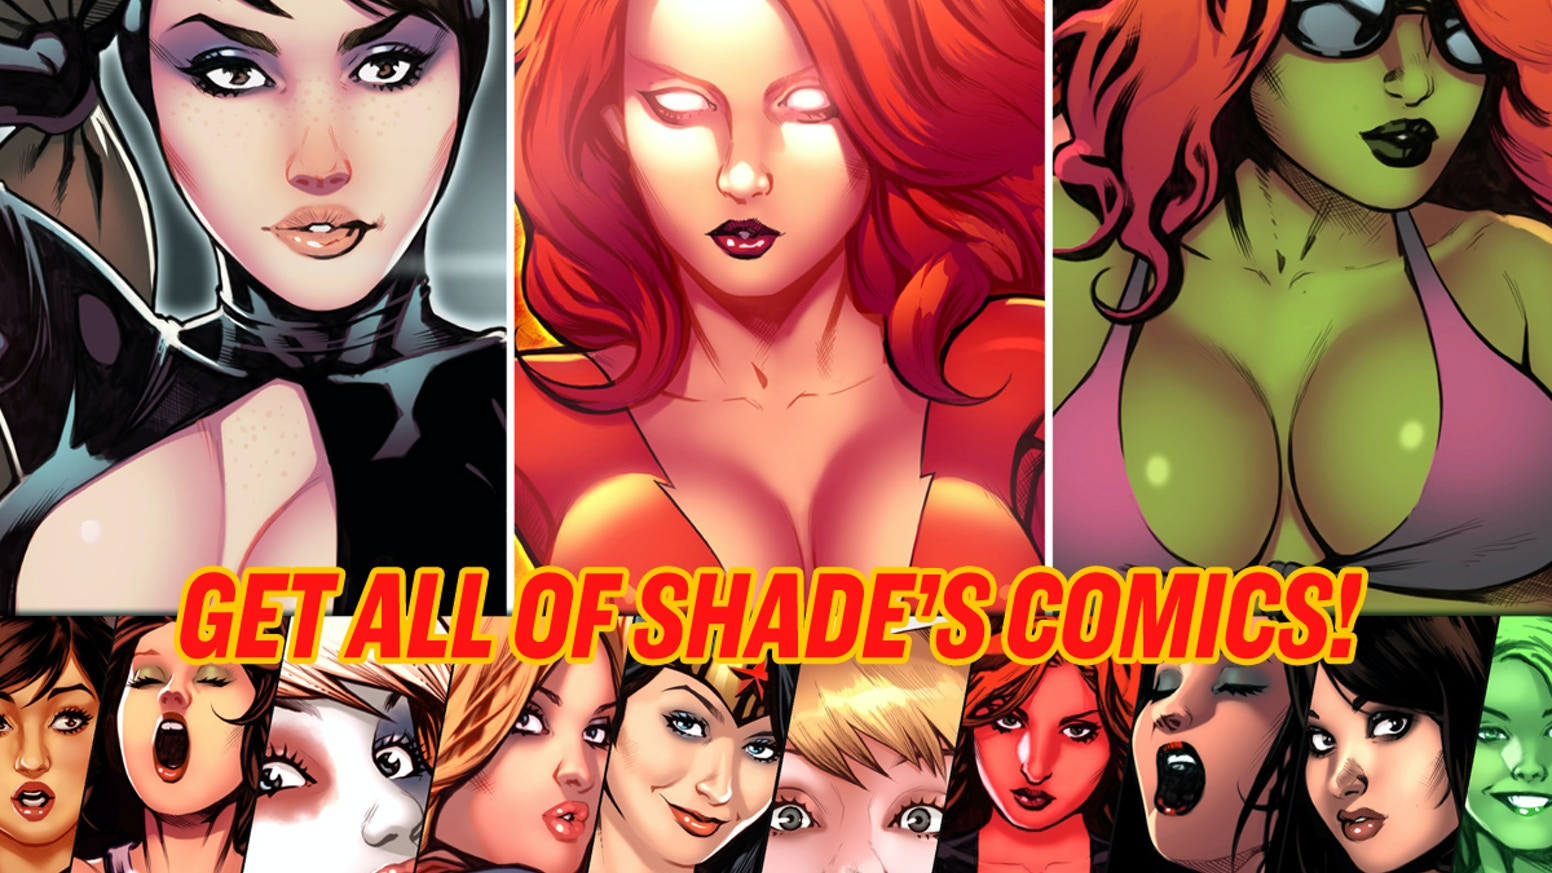 Get all of artist Shade's comics in this second chance opportunity!